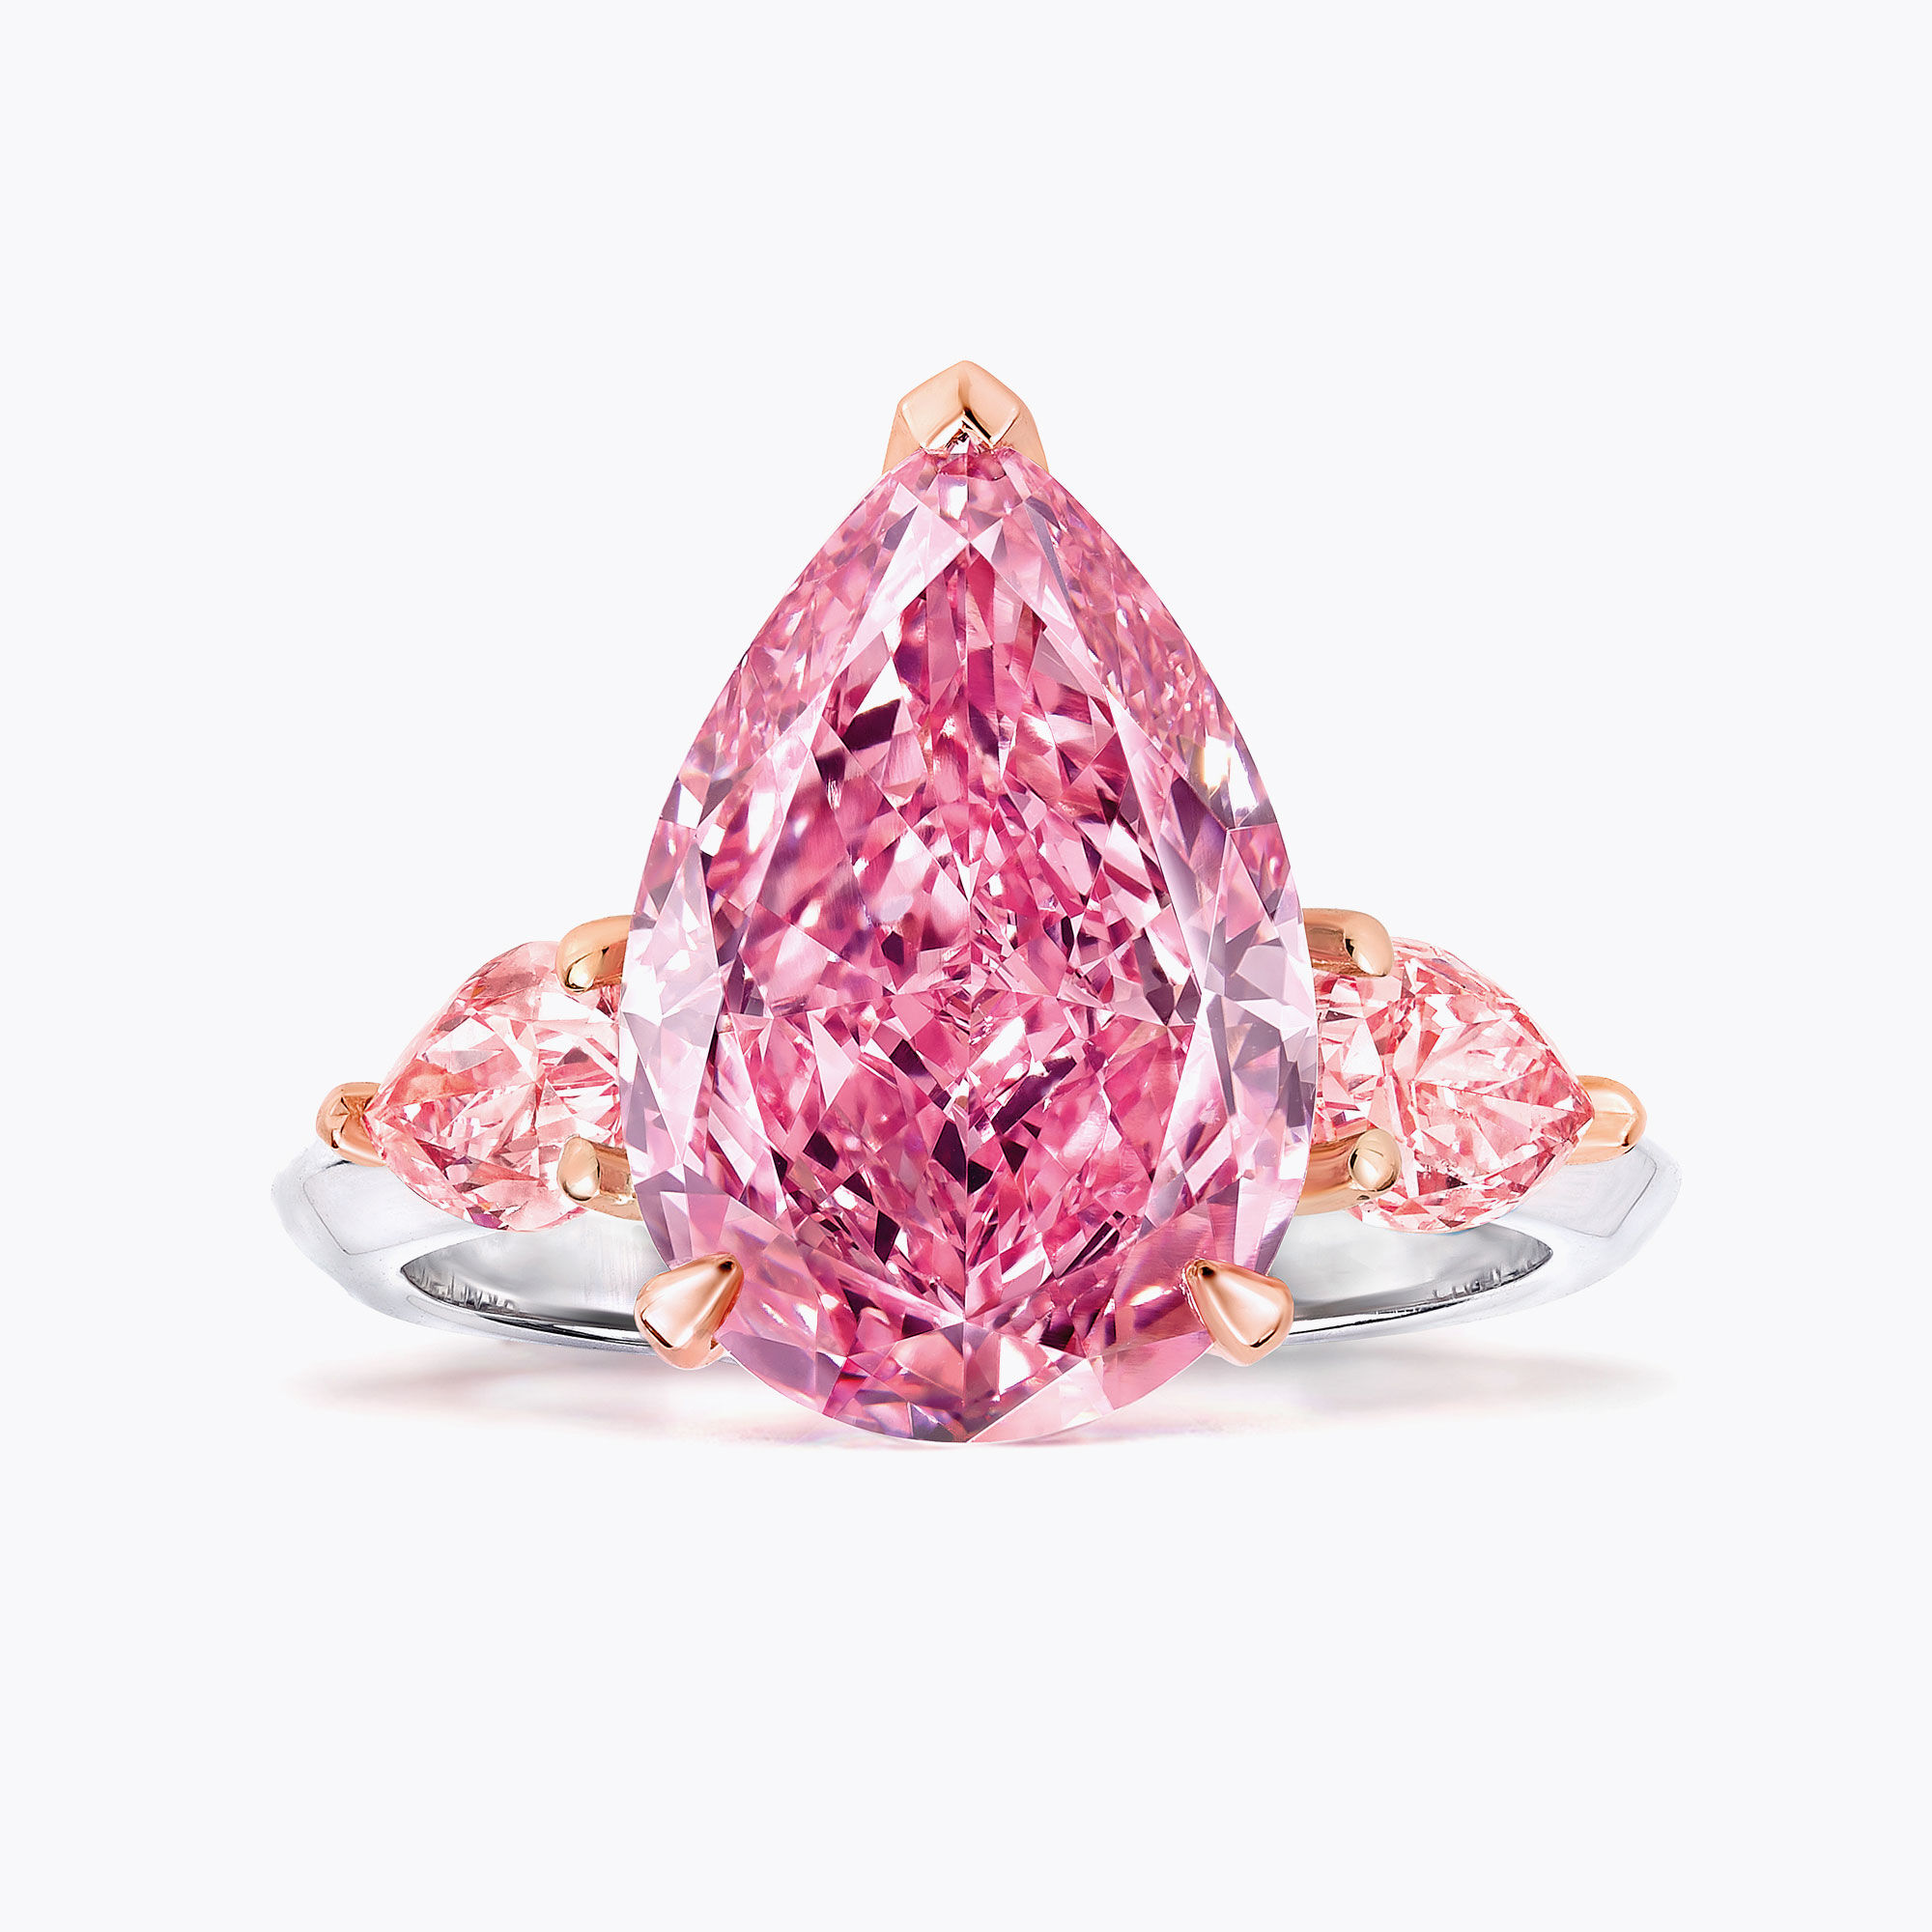 The Graff Lesotho Pink diamond ring